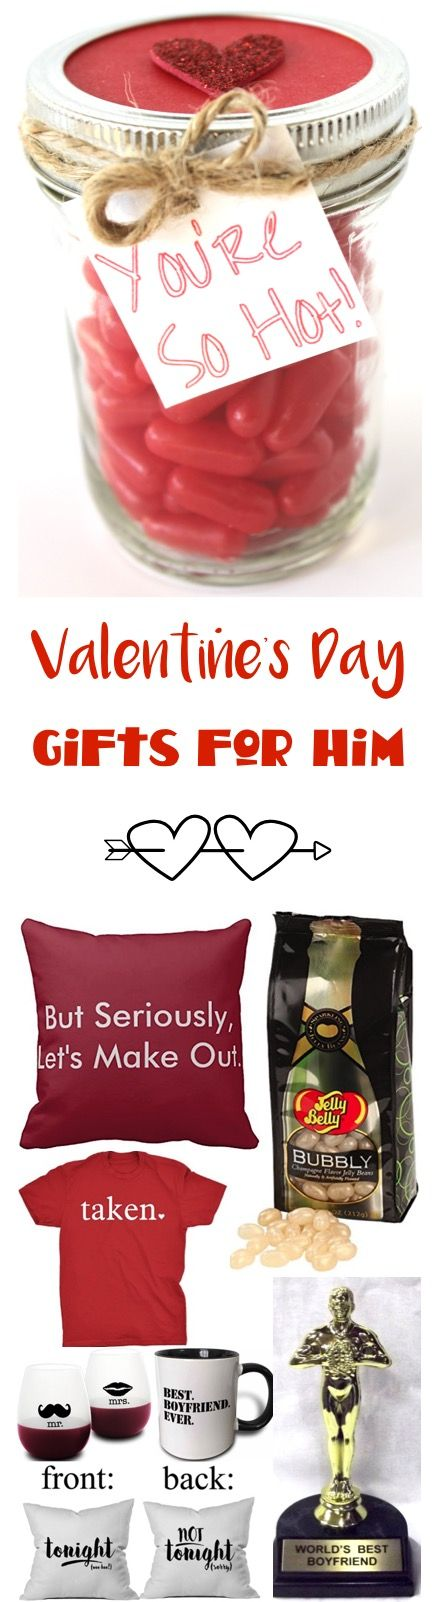 44 Valentine's Day Gifts for Him! {Fun & Romantic}